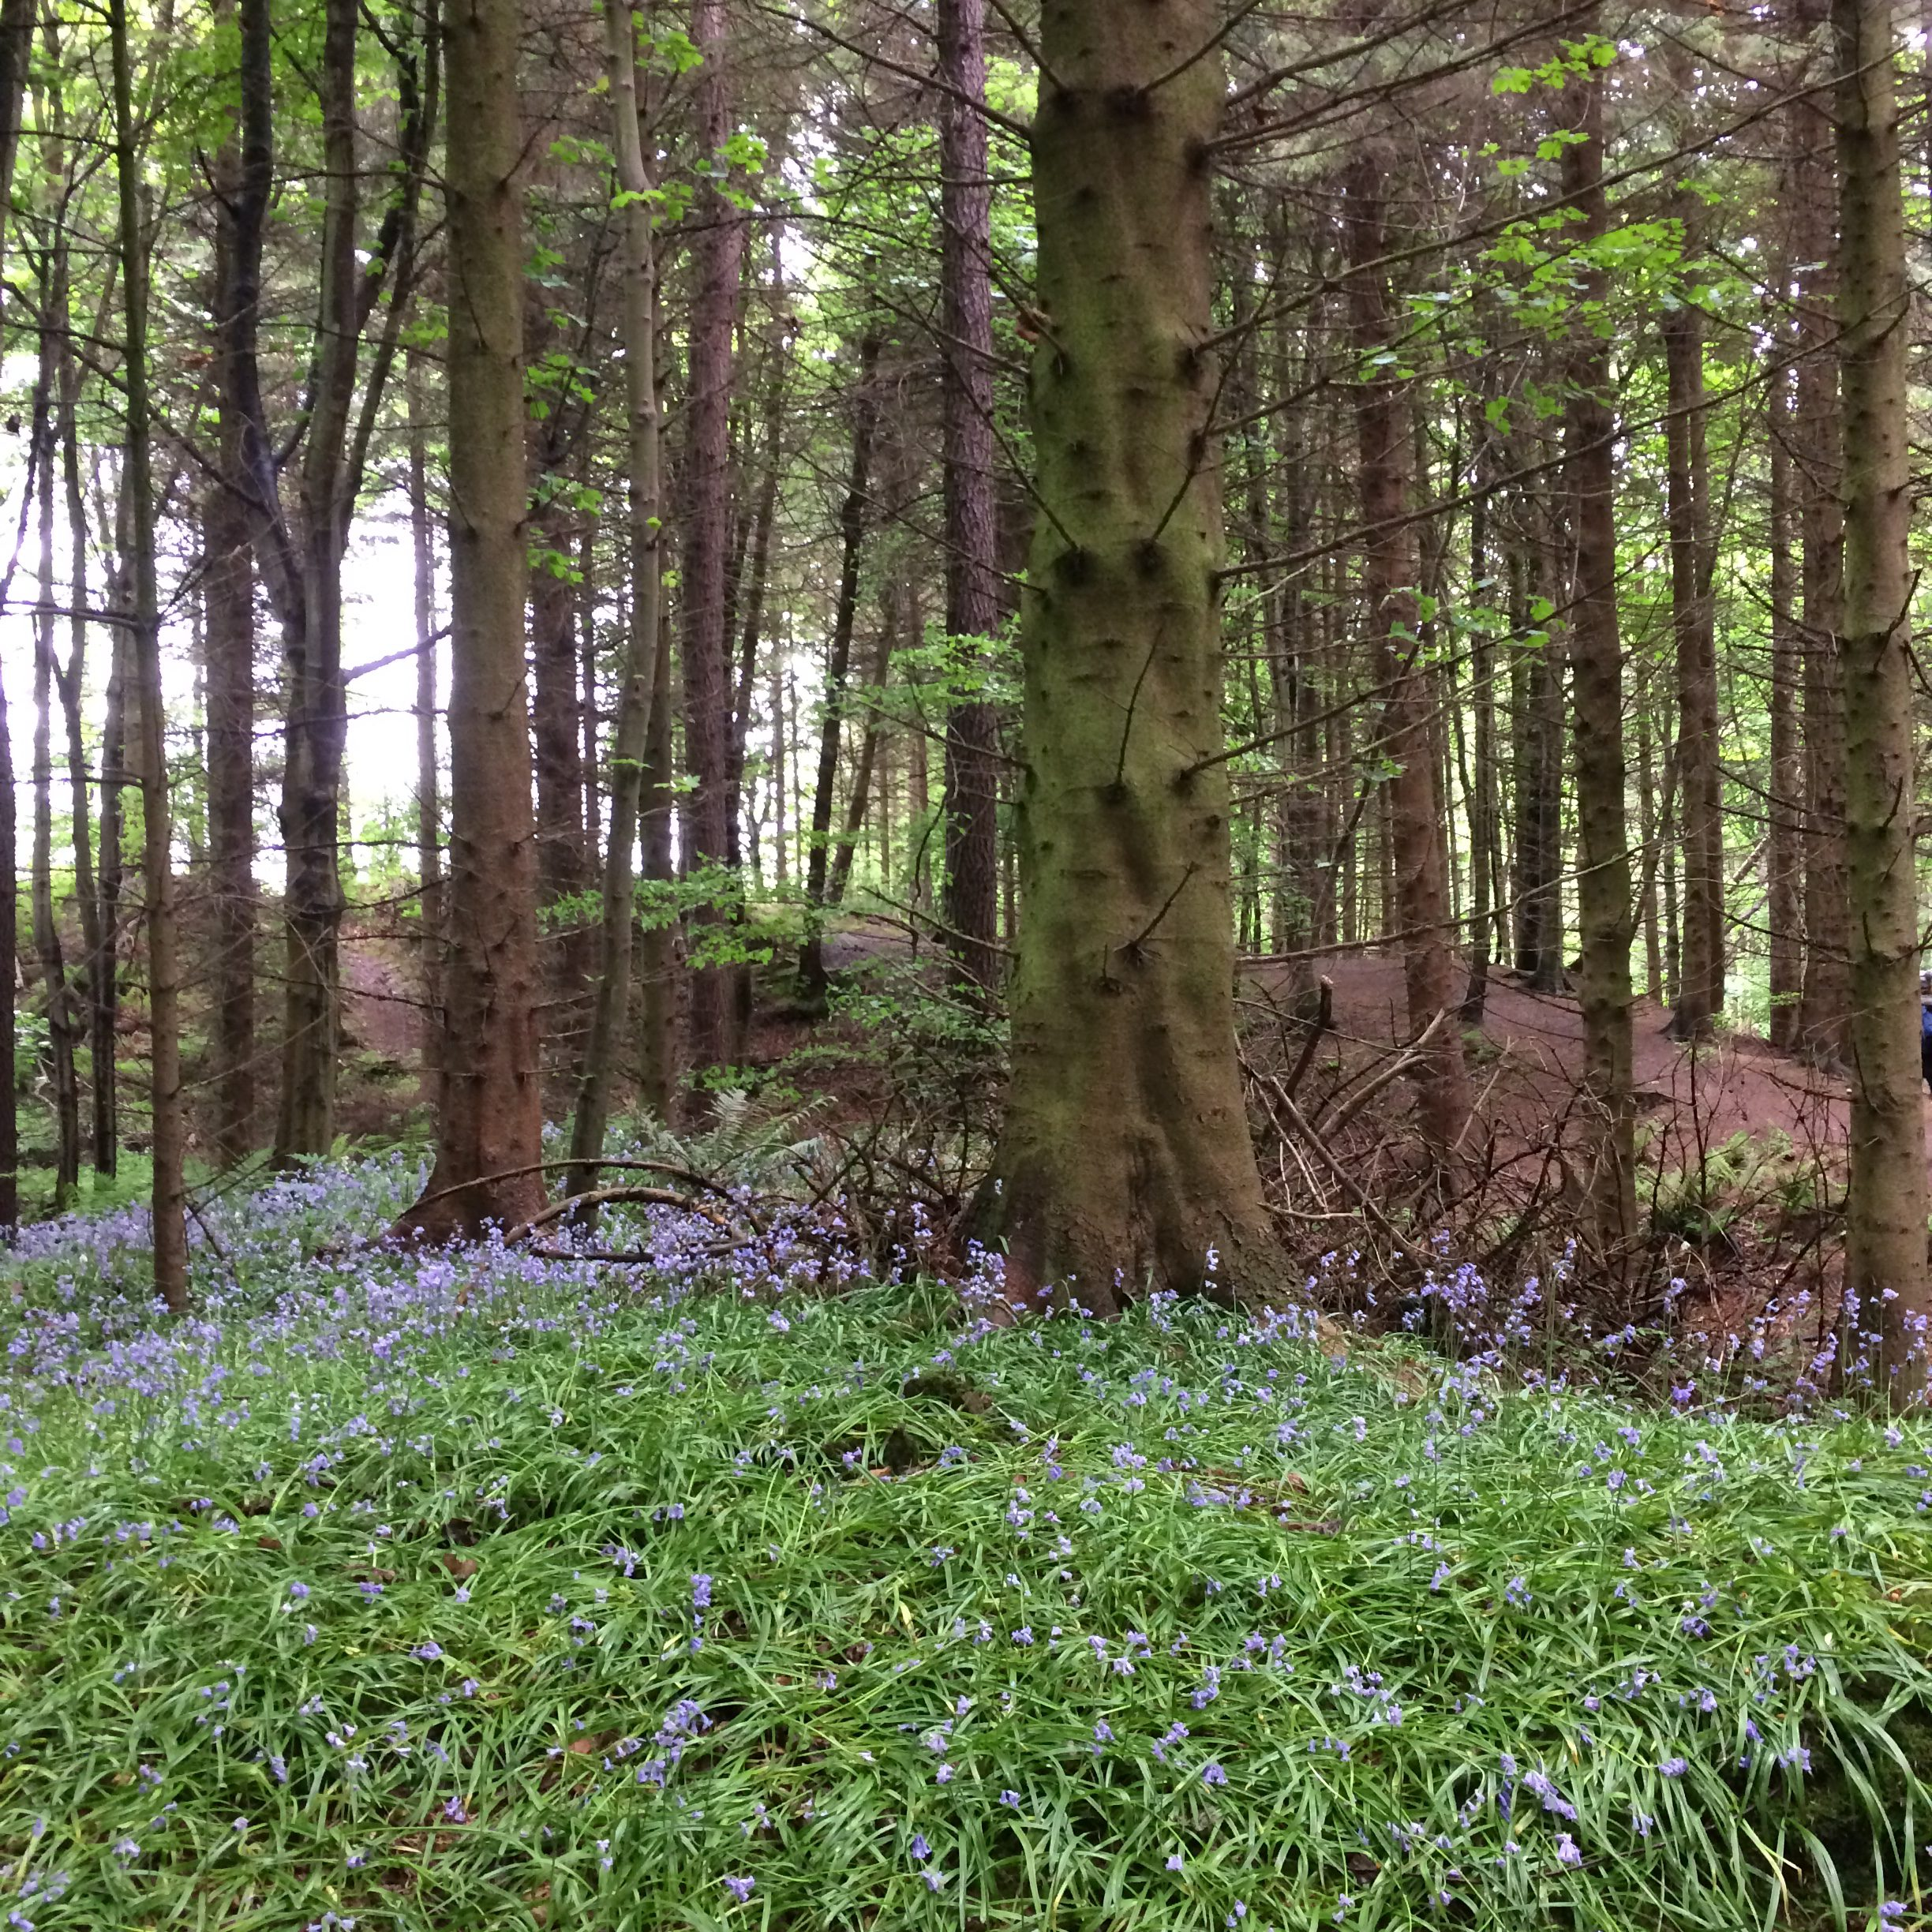 Reasons to go camping - Bluebells in the woods at Falkland, Cupar, Scotland